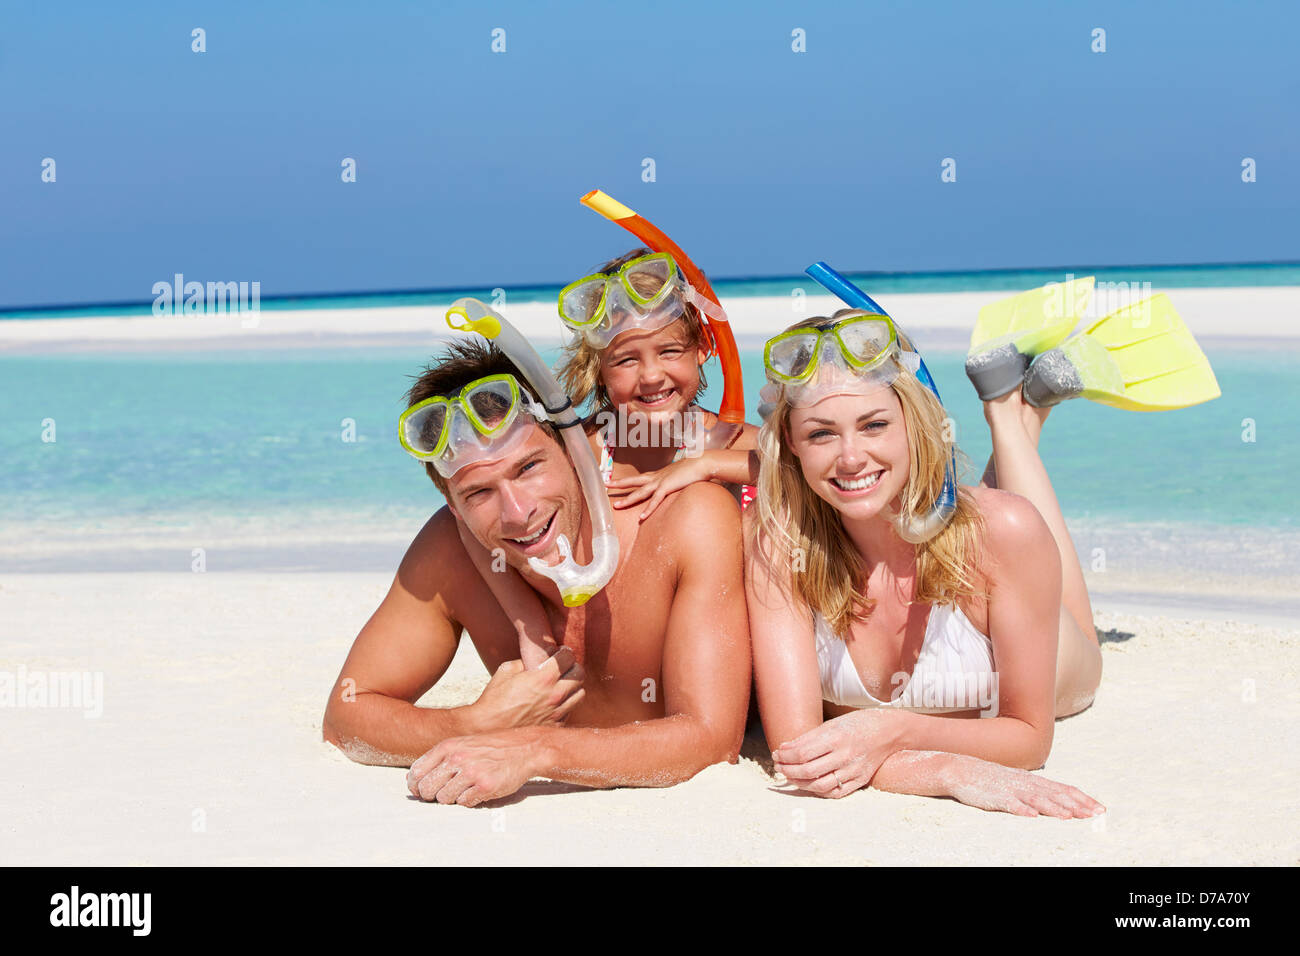 Family With Snorkels Enjoying Beach Holiday - Stock Image